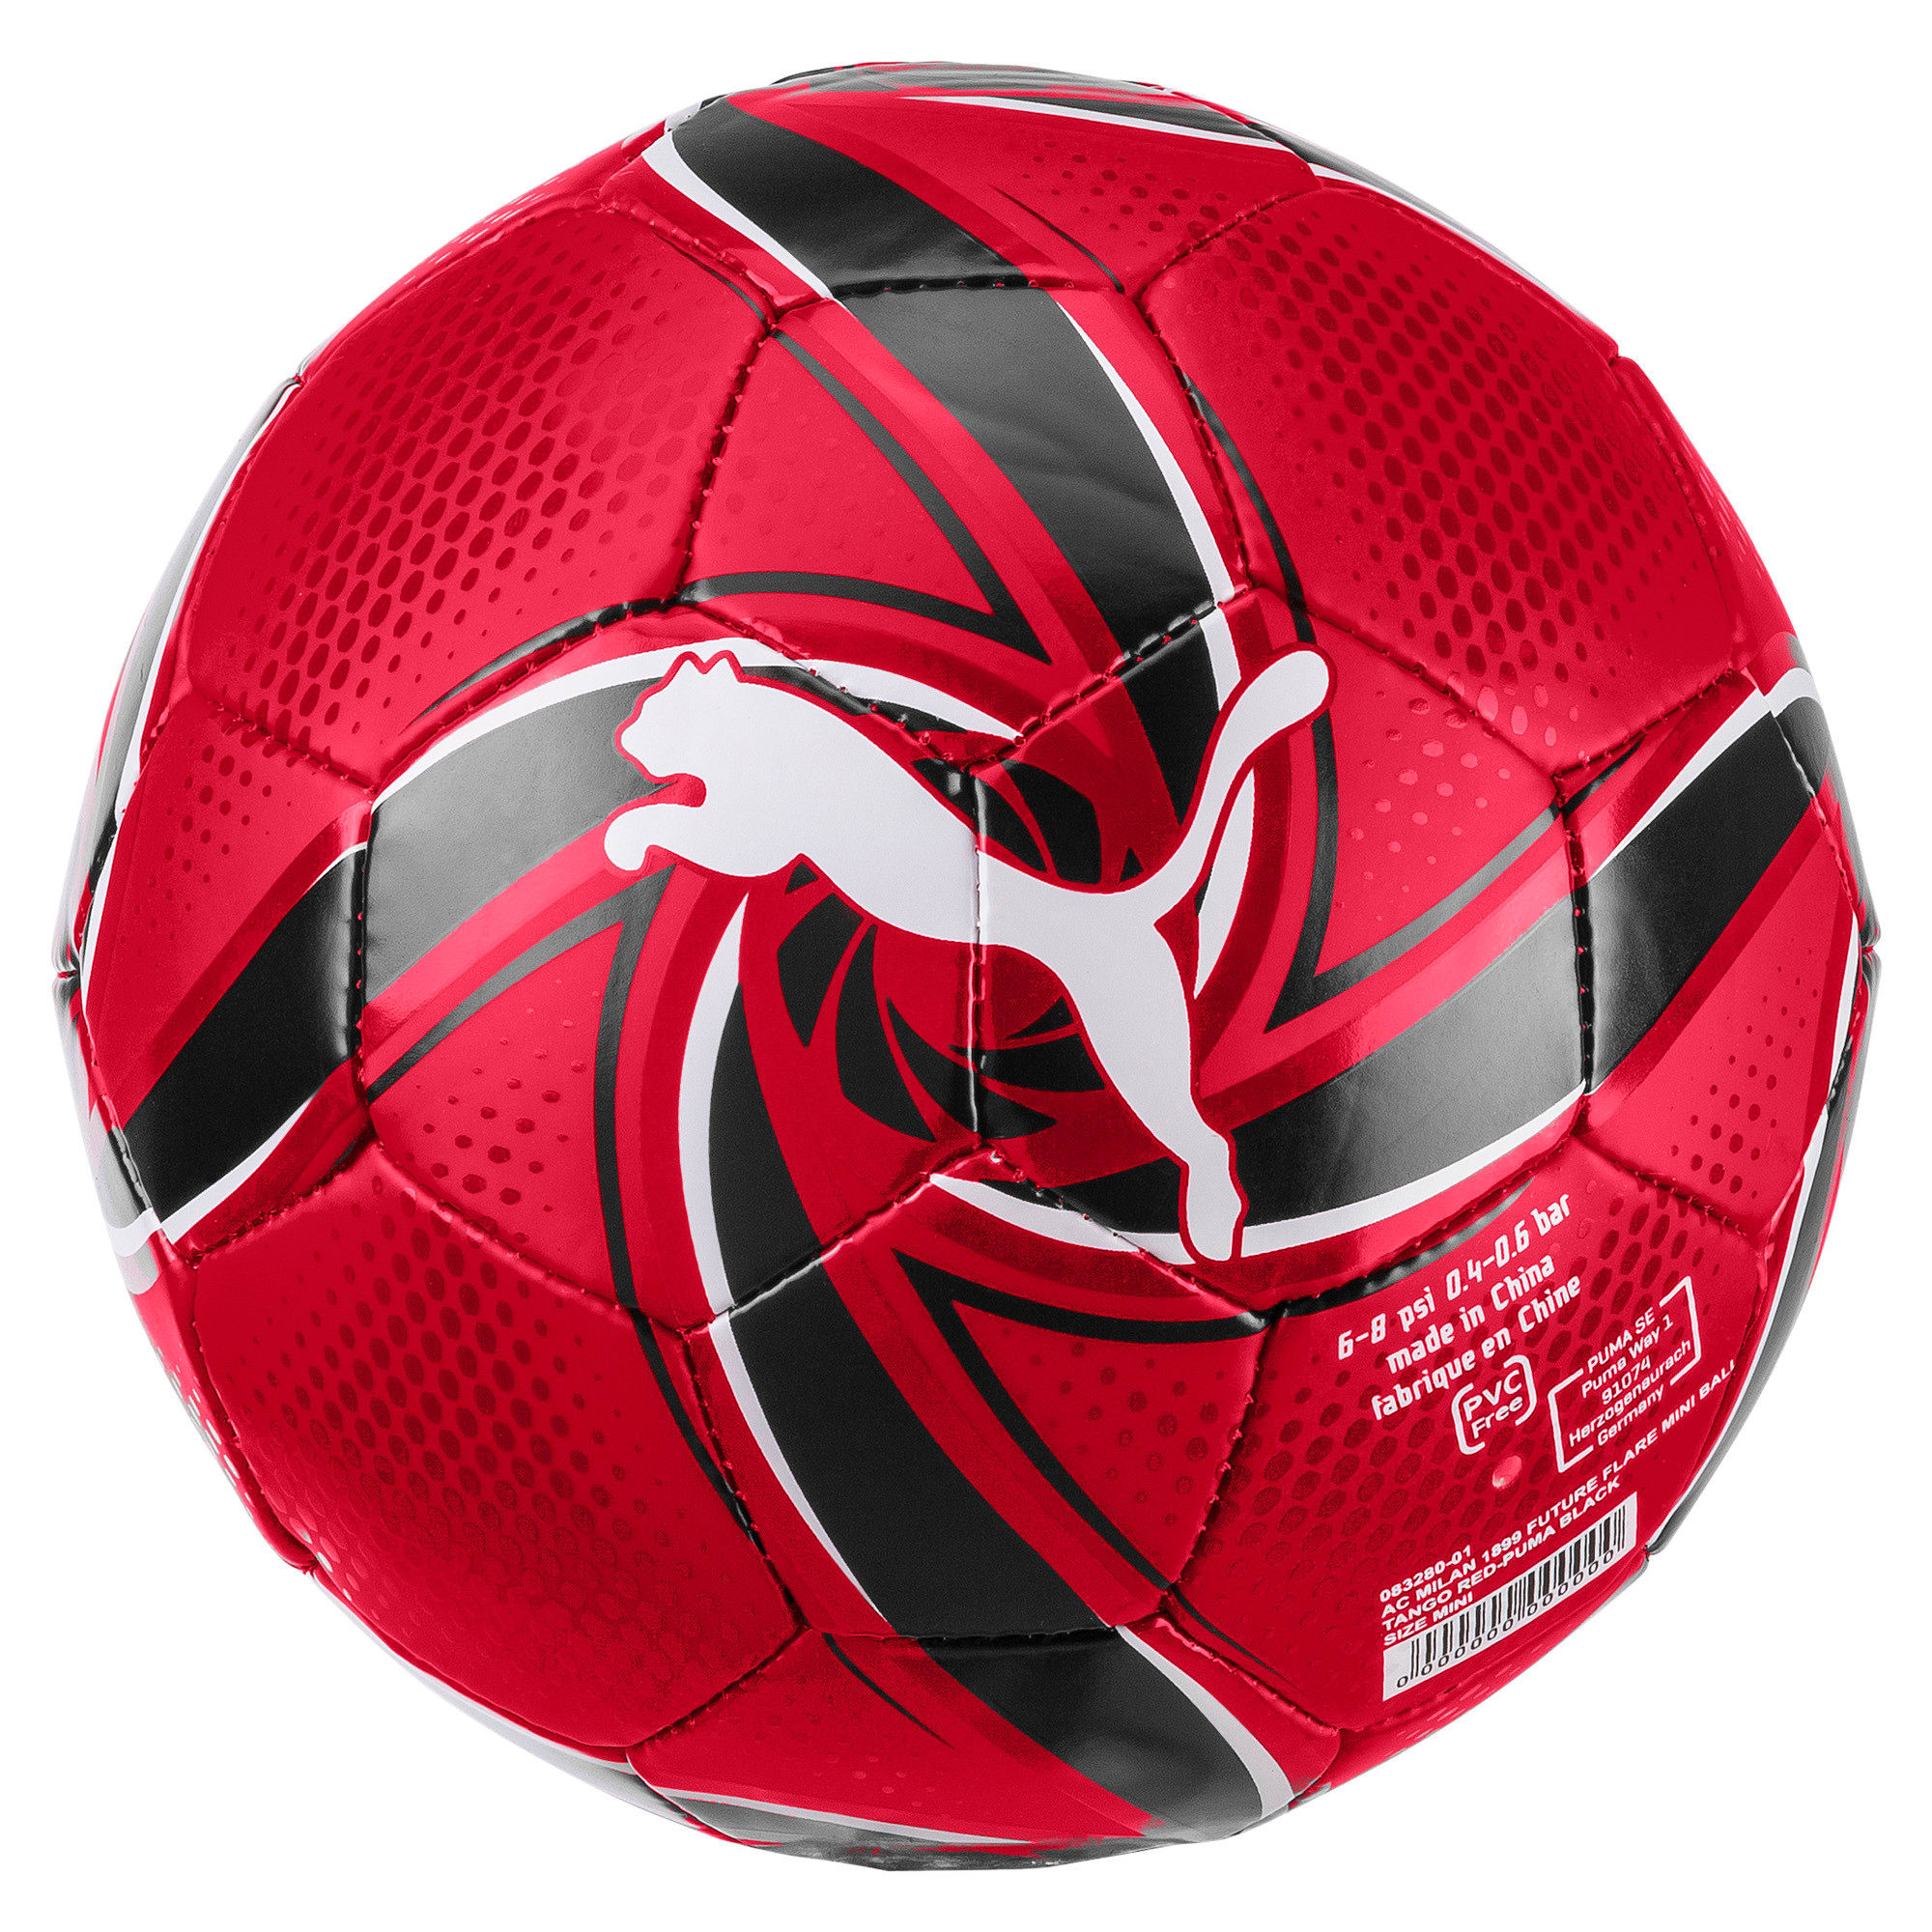 Thumbnail 1 of AC Milan FUTURE Flare Mini Ball, Tango Red -Puma Black, medium